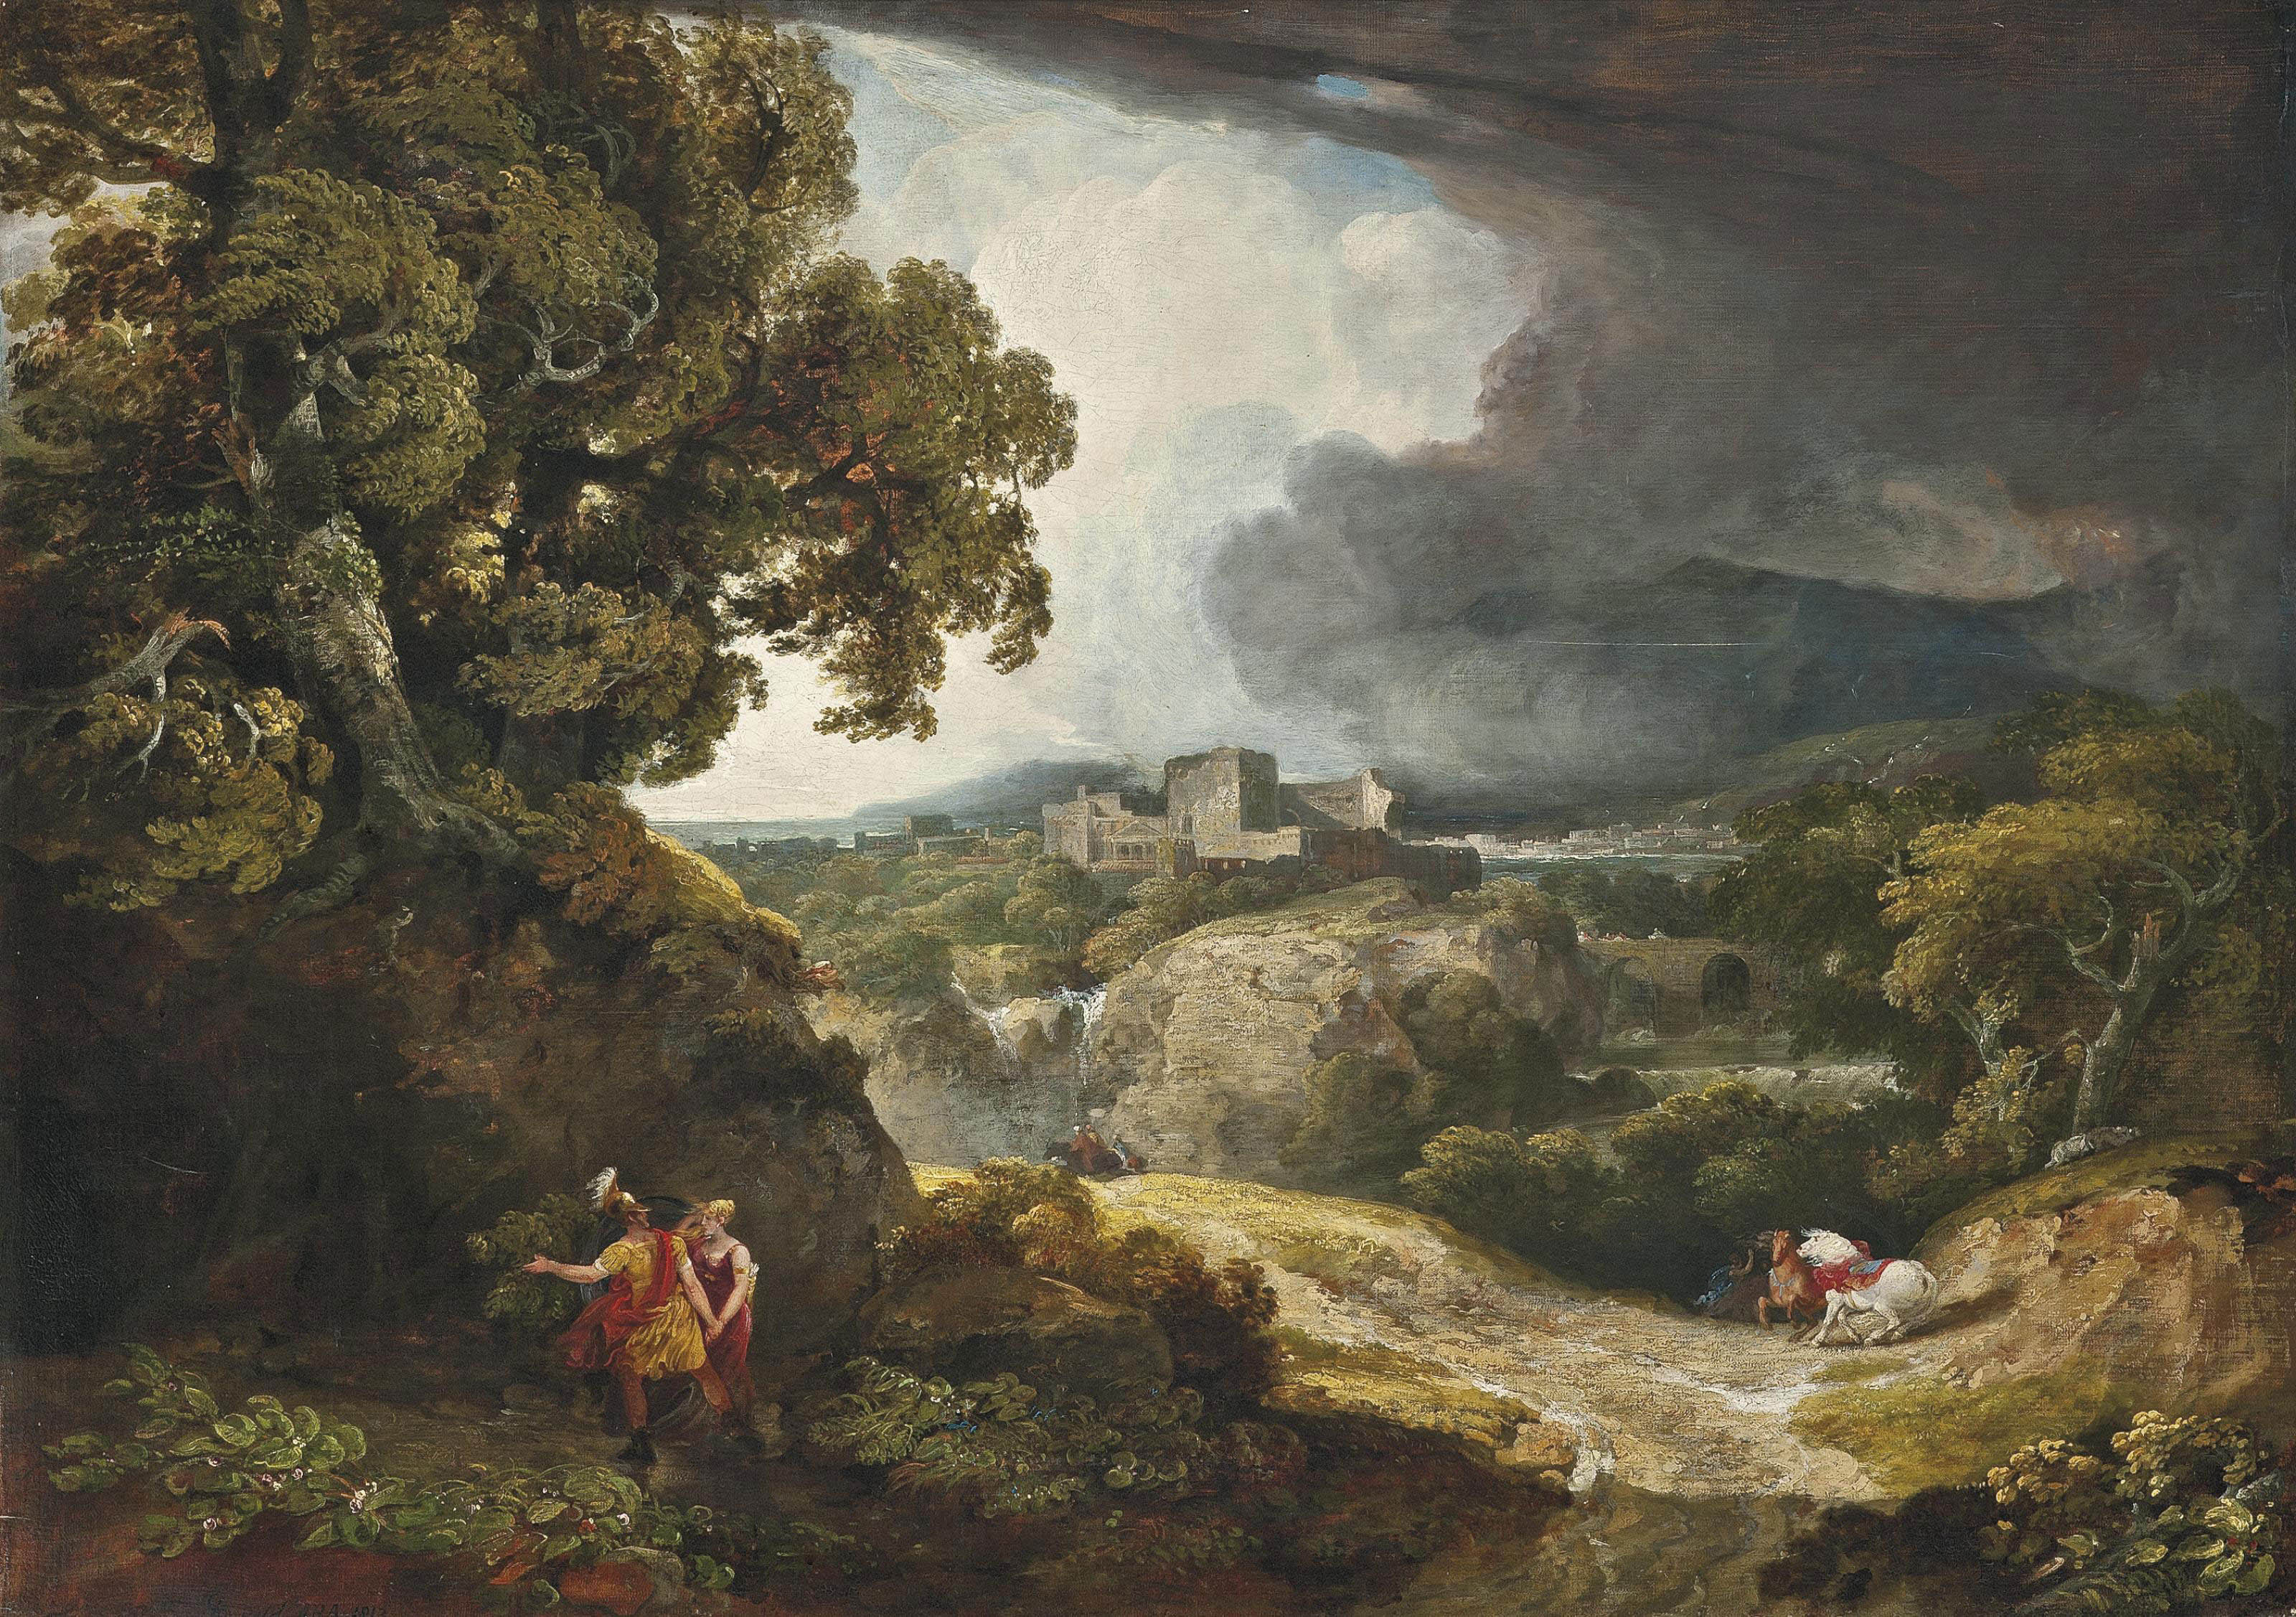 A classical landscape with Dido and Aeneas sheltering from the storm, Carthage beyond